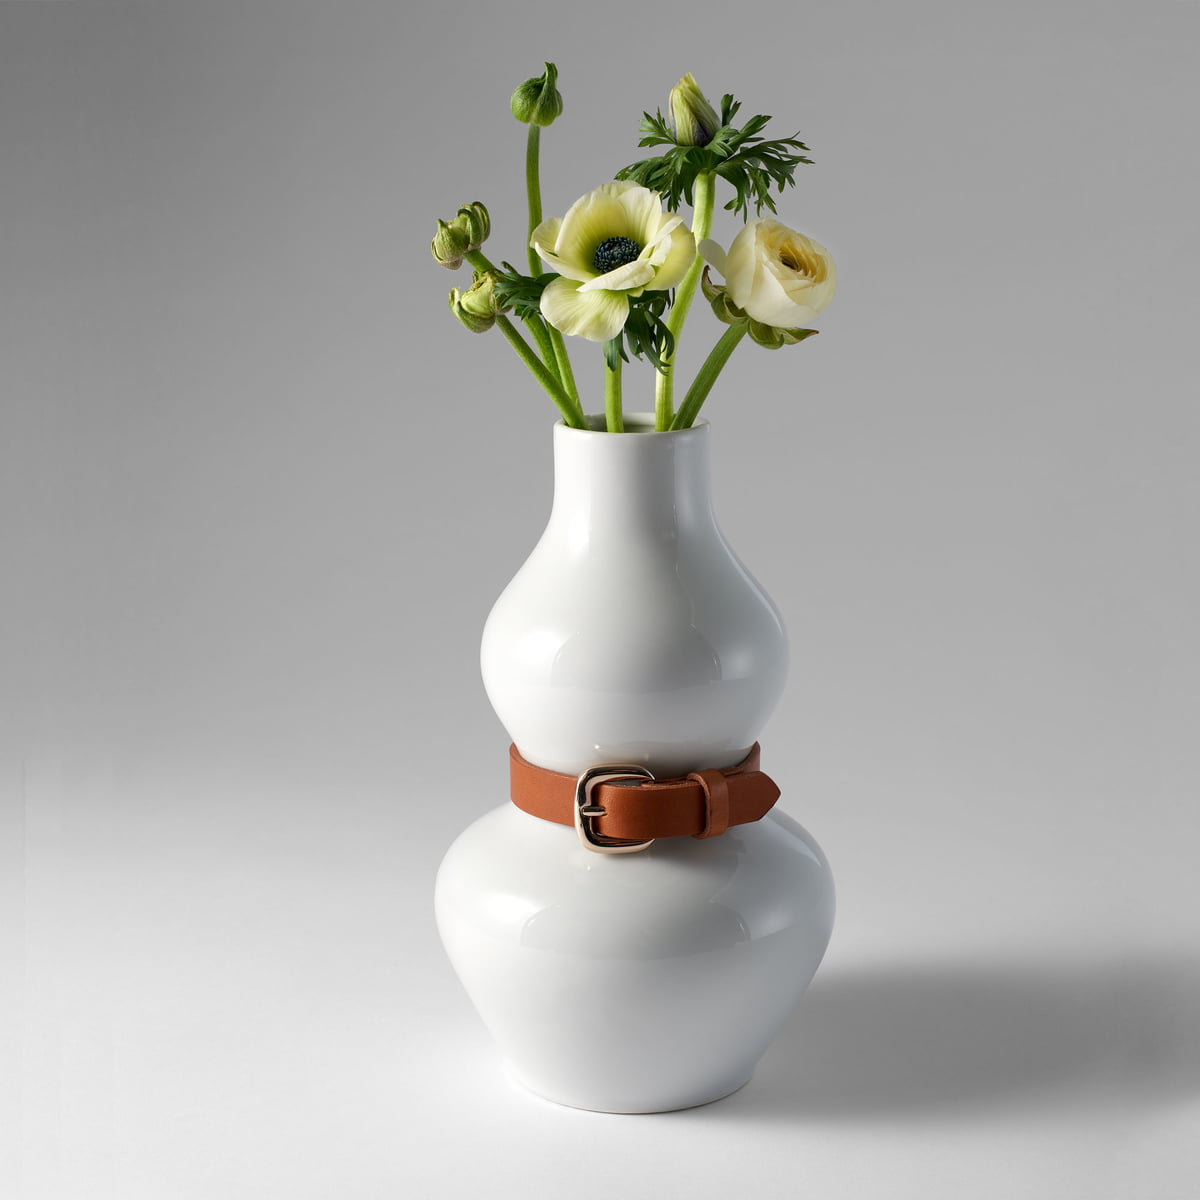 Alba vase von design house stockholm im shop for Design im shop